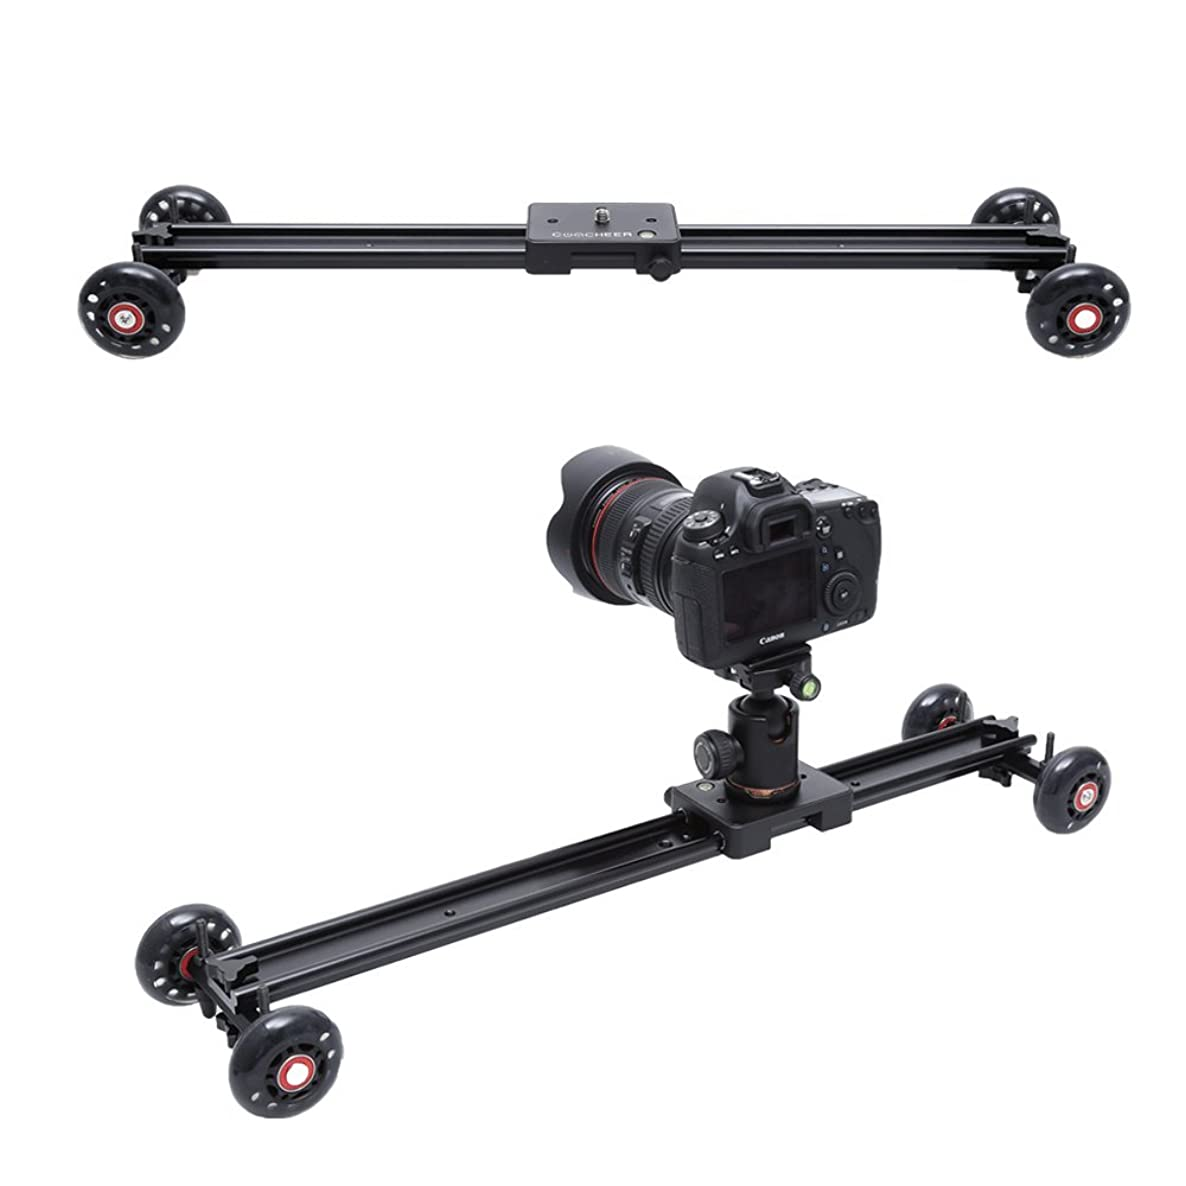 SAILNOVO Camera Slider, Aluminum DSLR Dolly Track Rail Perfect for Photography and Video Recording with 1/4